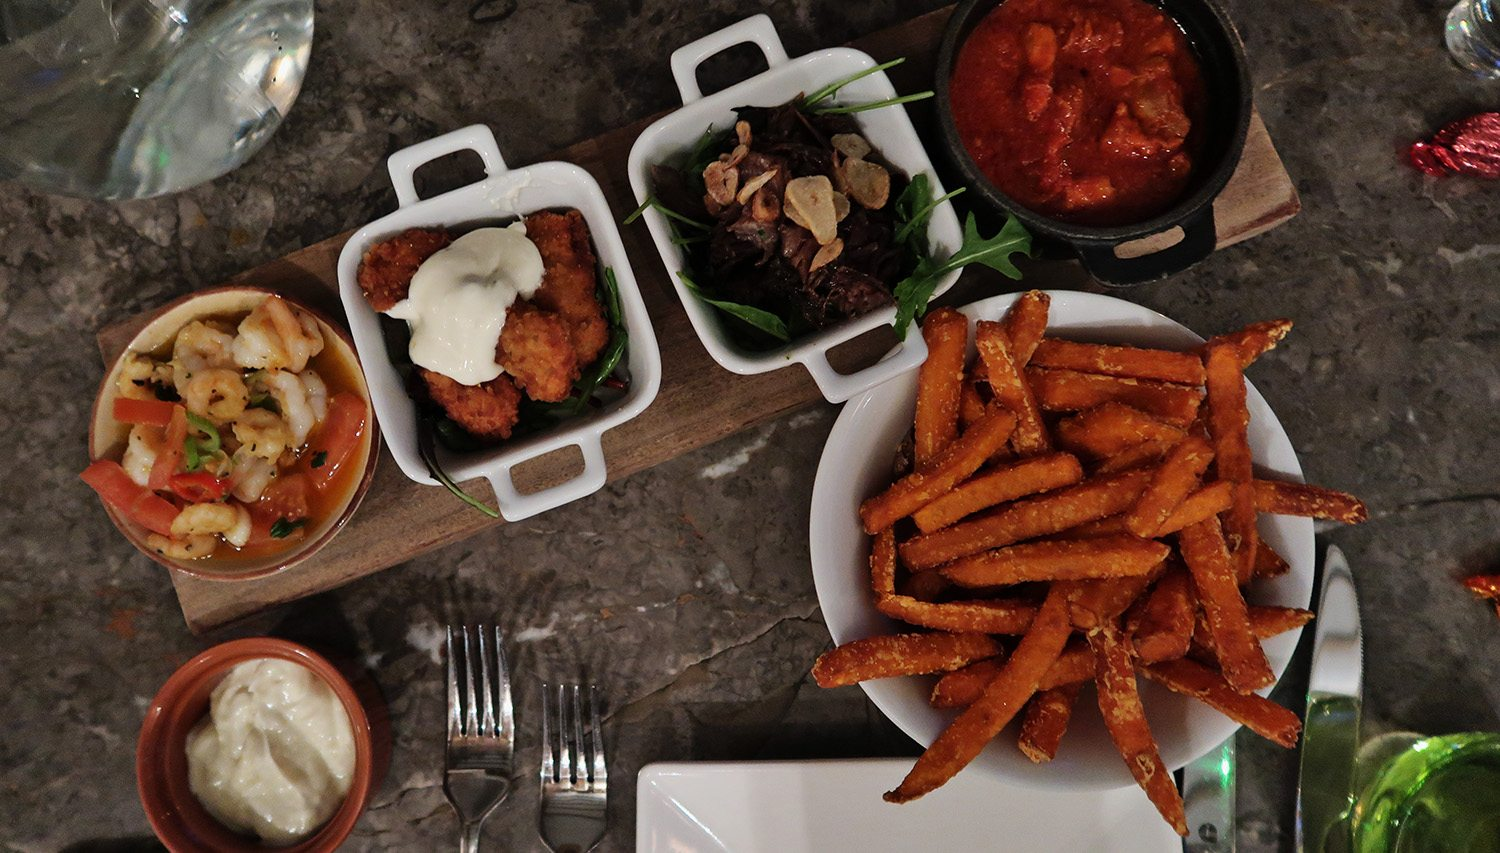 Top view of 4 tapas plates and a bowl of sweet potato fries